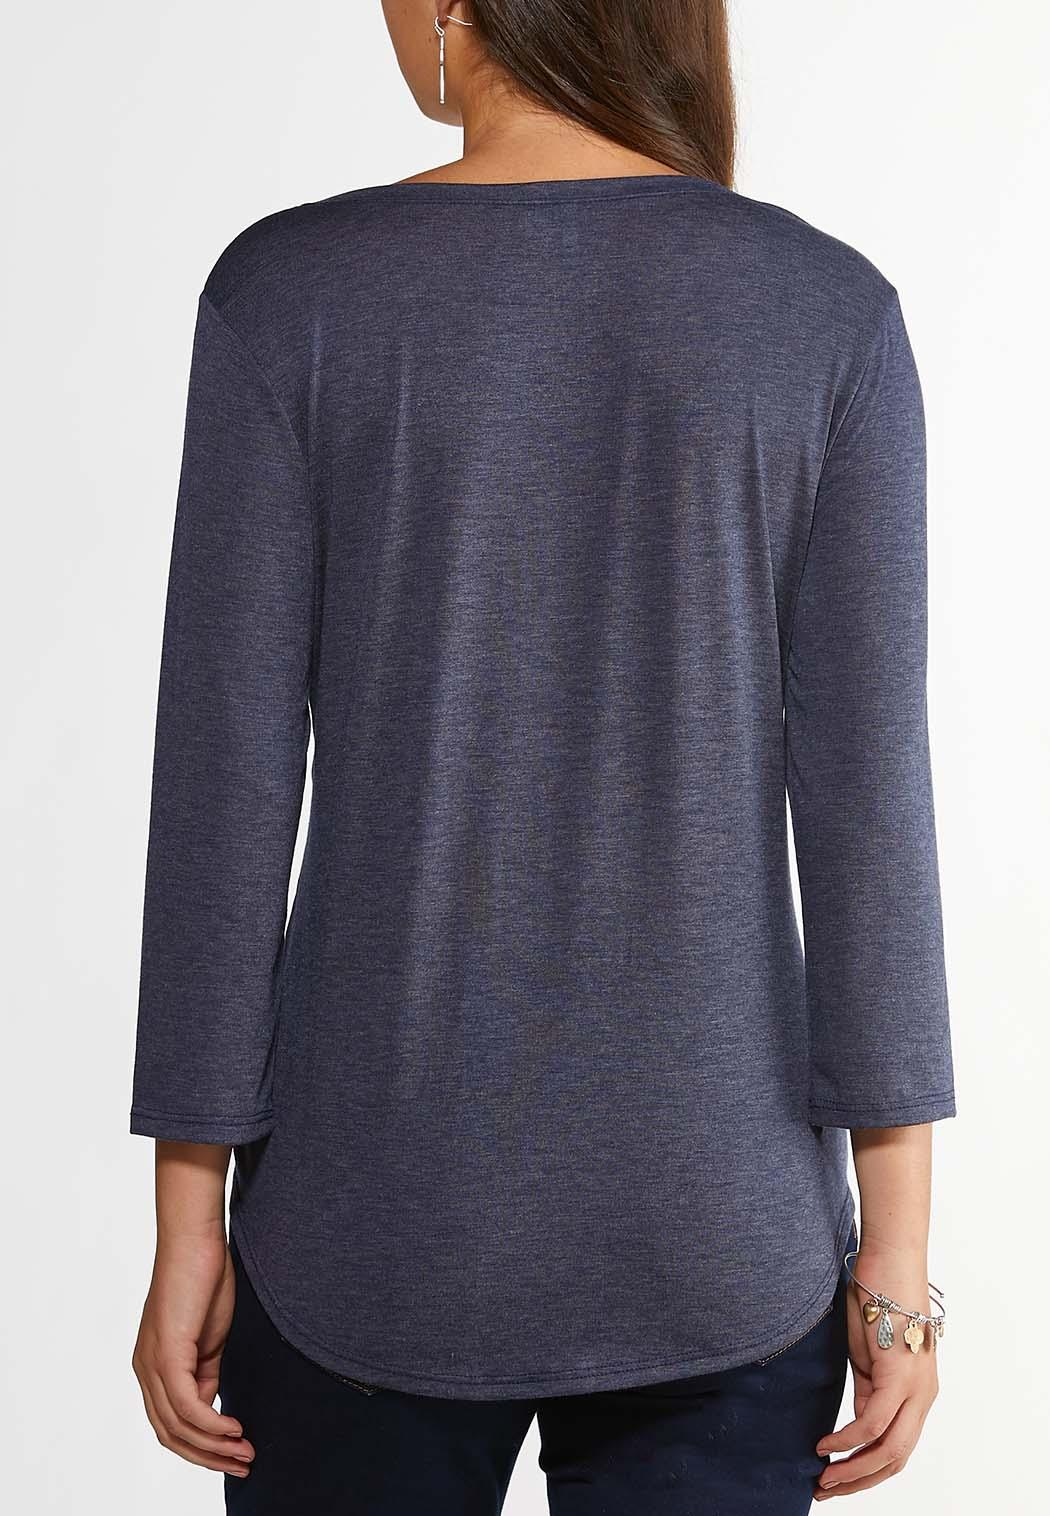 Kindness Knotted Top (Item #44414002)